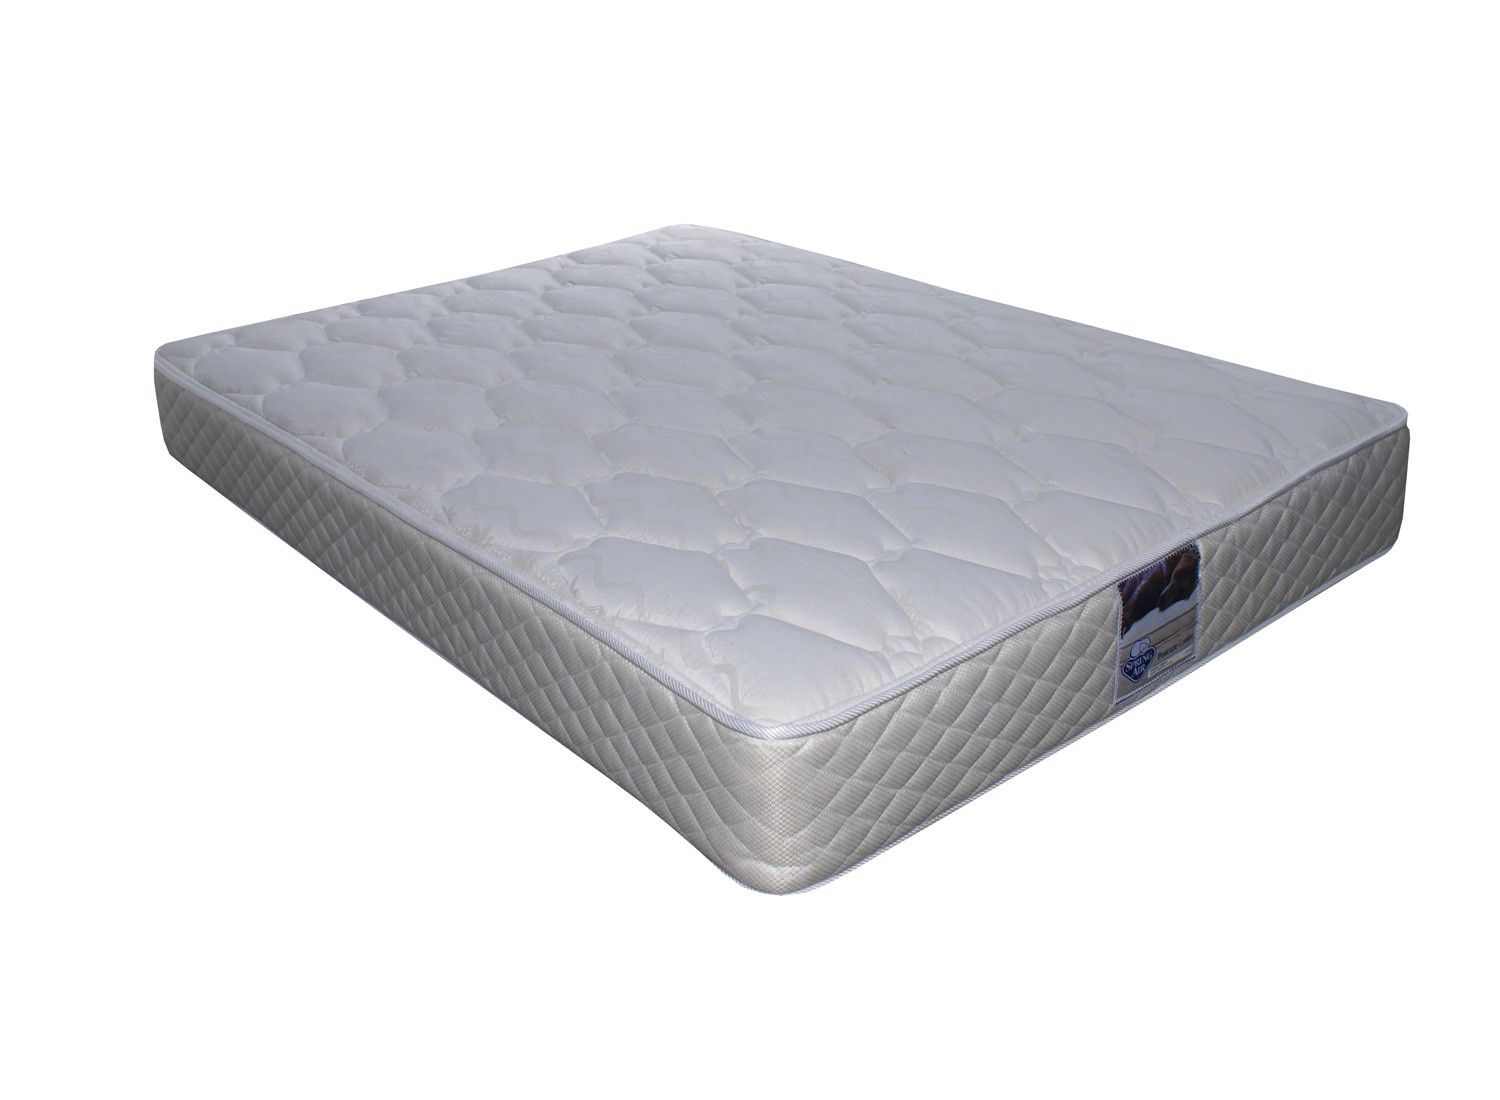 Spring air back supporter mattress costco spring air for Spring air mattress